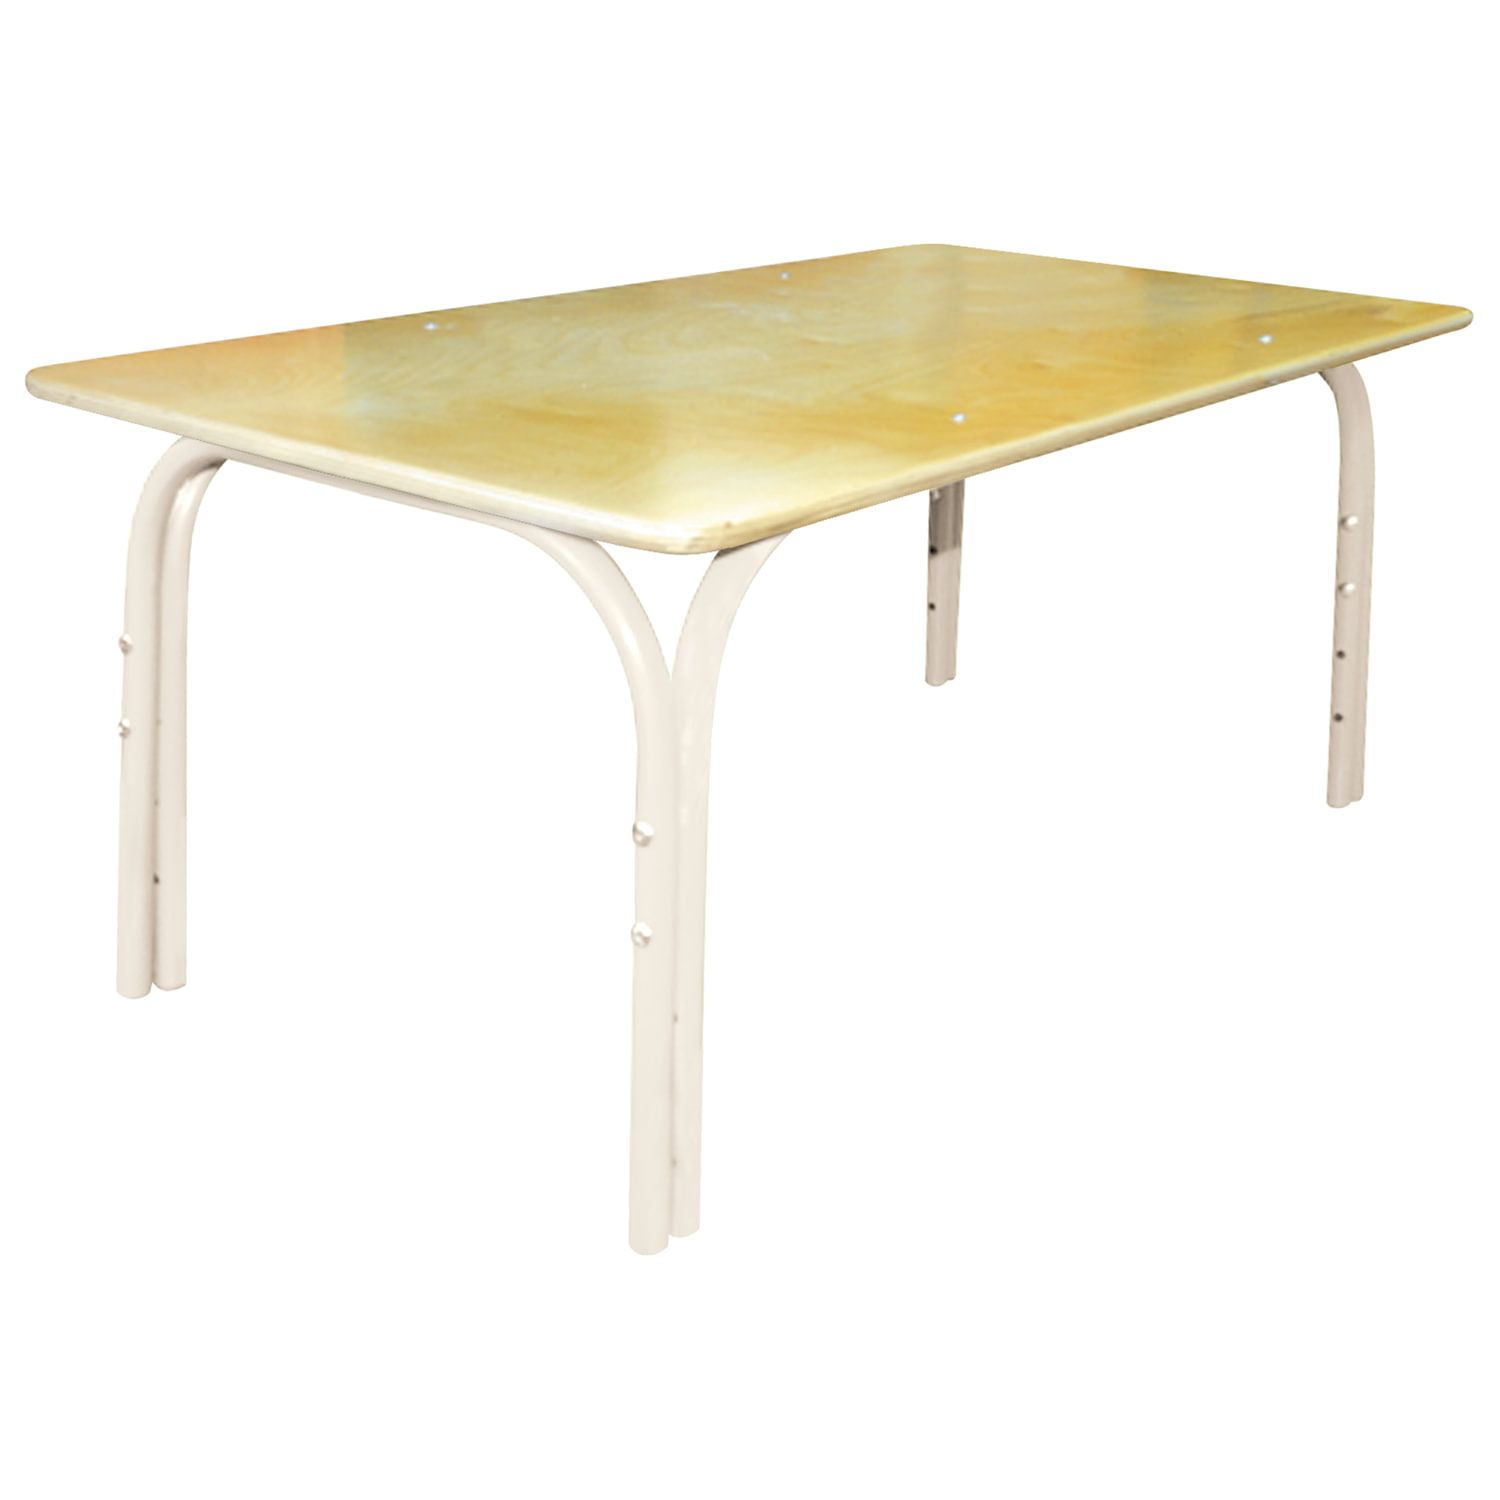 Children's Egg Table, 1100 x580 x460-580 mm, adjustable, height 1-3 (100-145 cm), plywood/metal, ivory